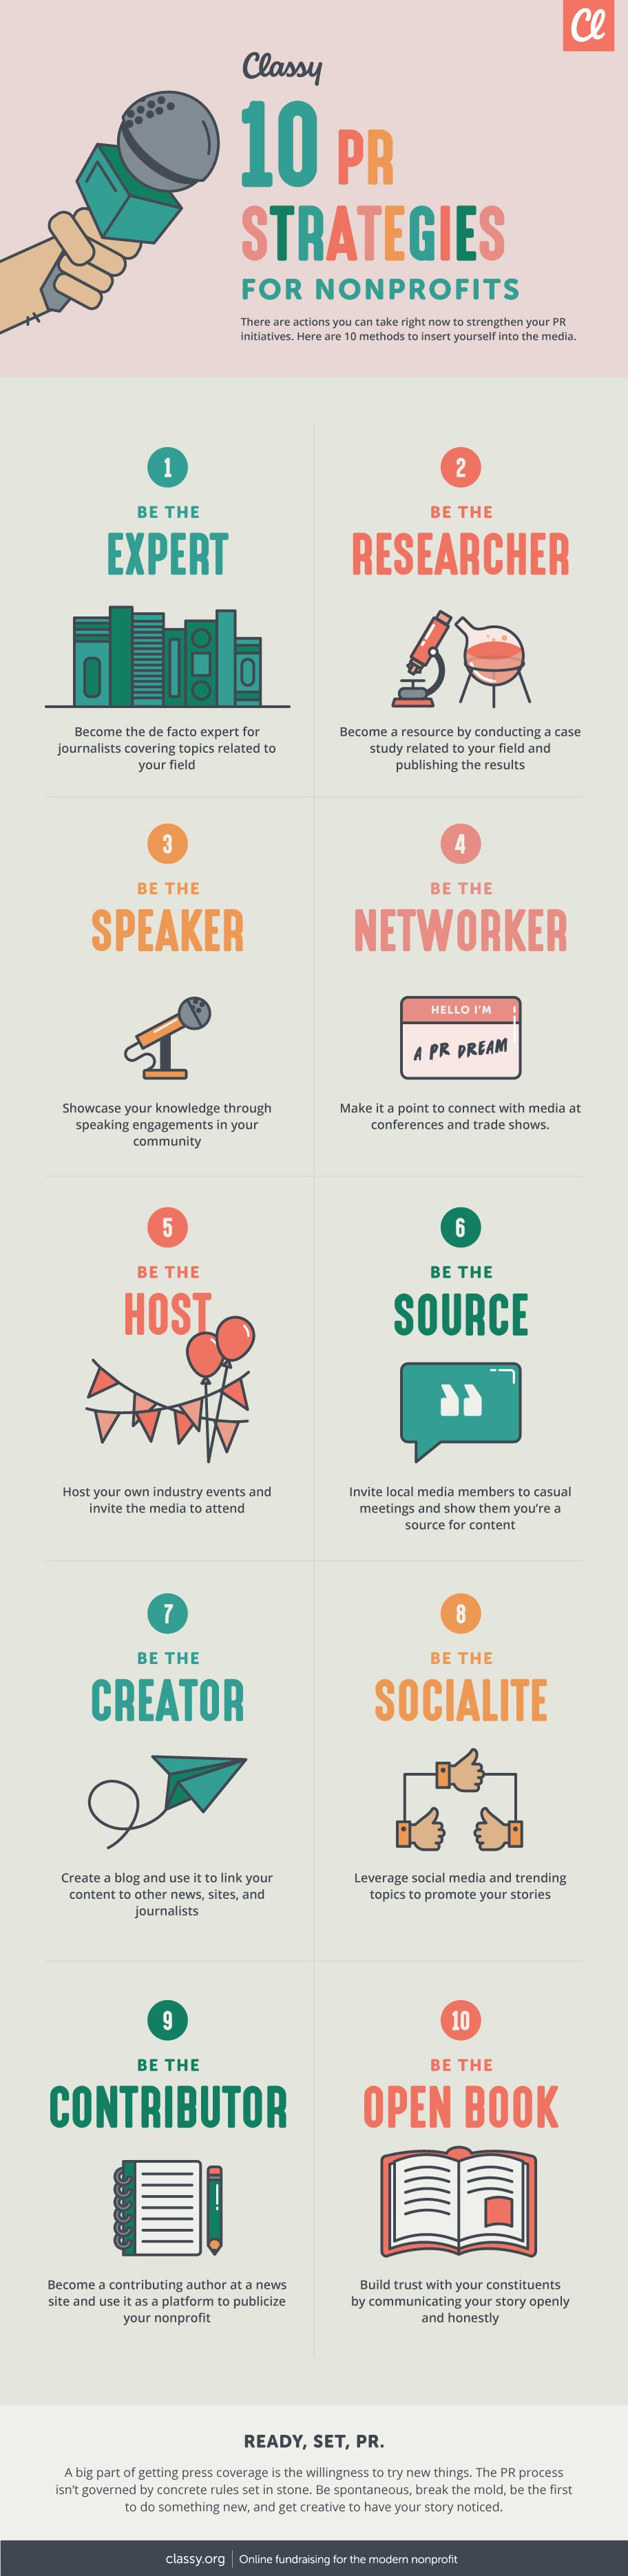 10 PR Strategies for Your Nonprofit #Infographic